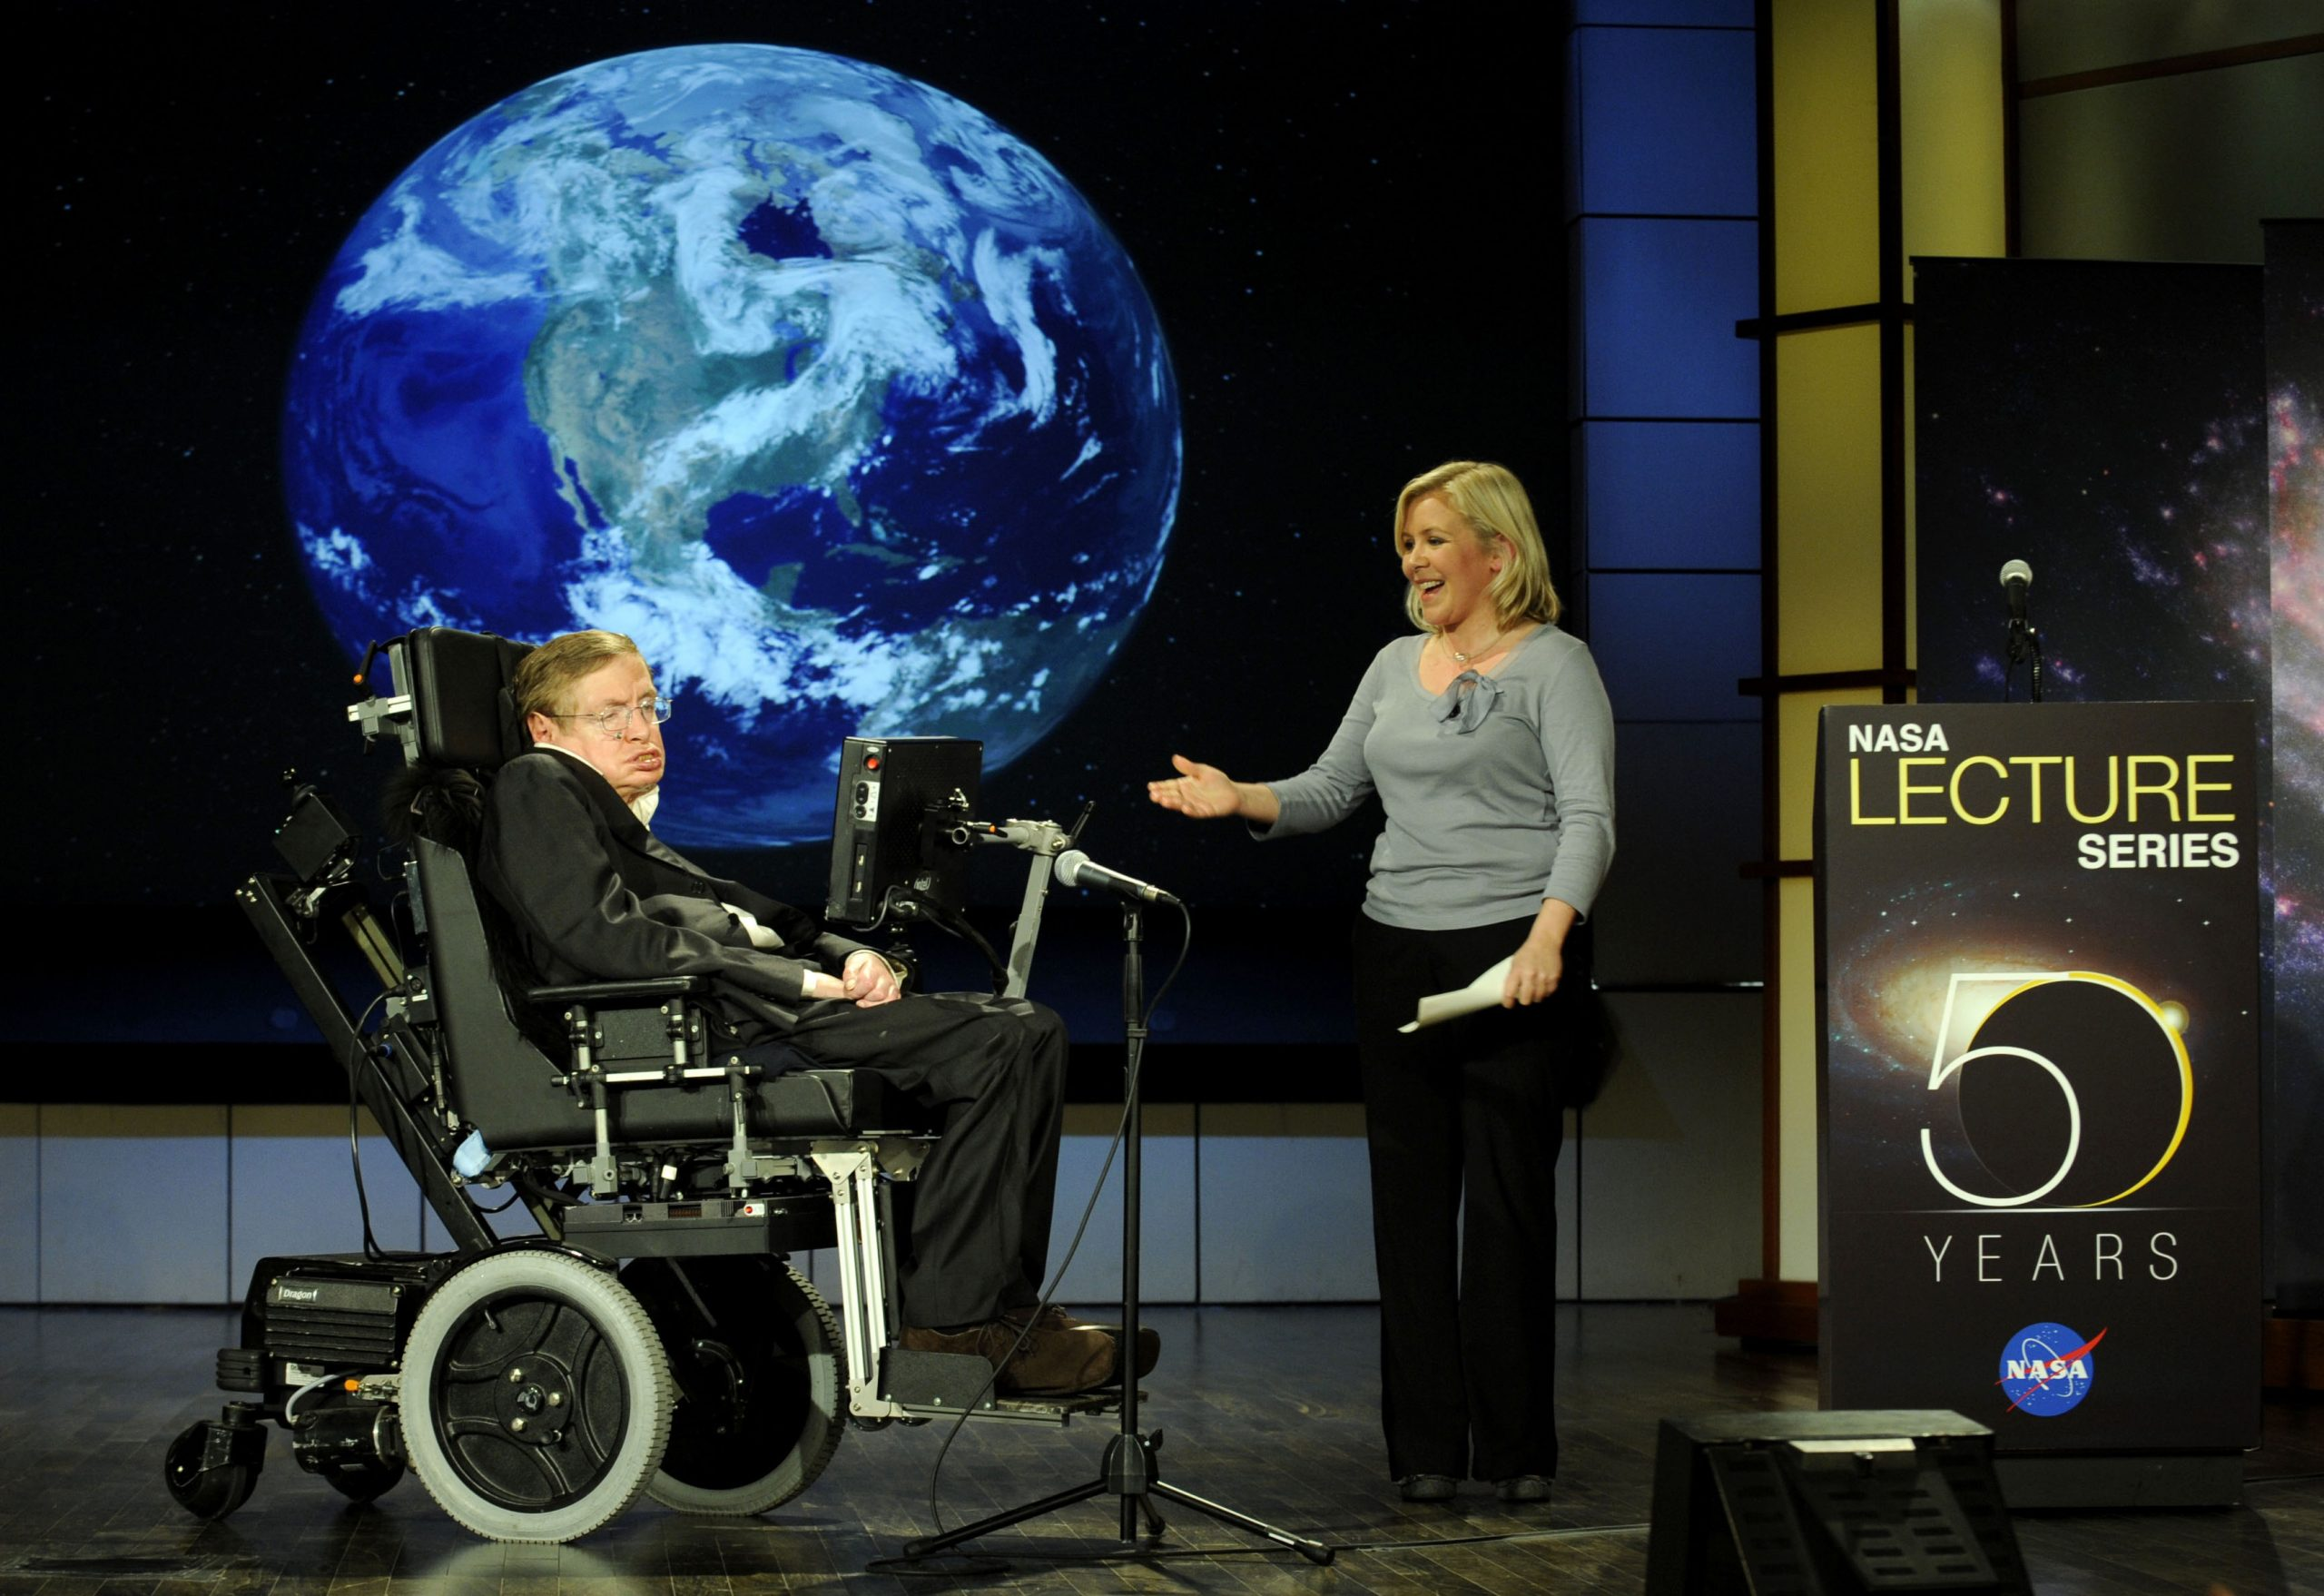 Stephen_hawking_and_lucy_hawking_nasa_2008 featured in This Week in Cascadia: May 27th - June 3rd